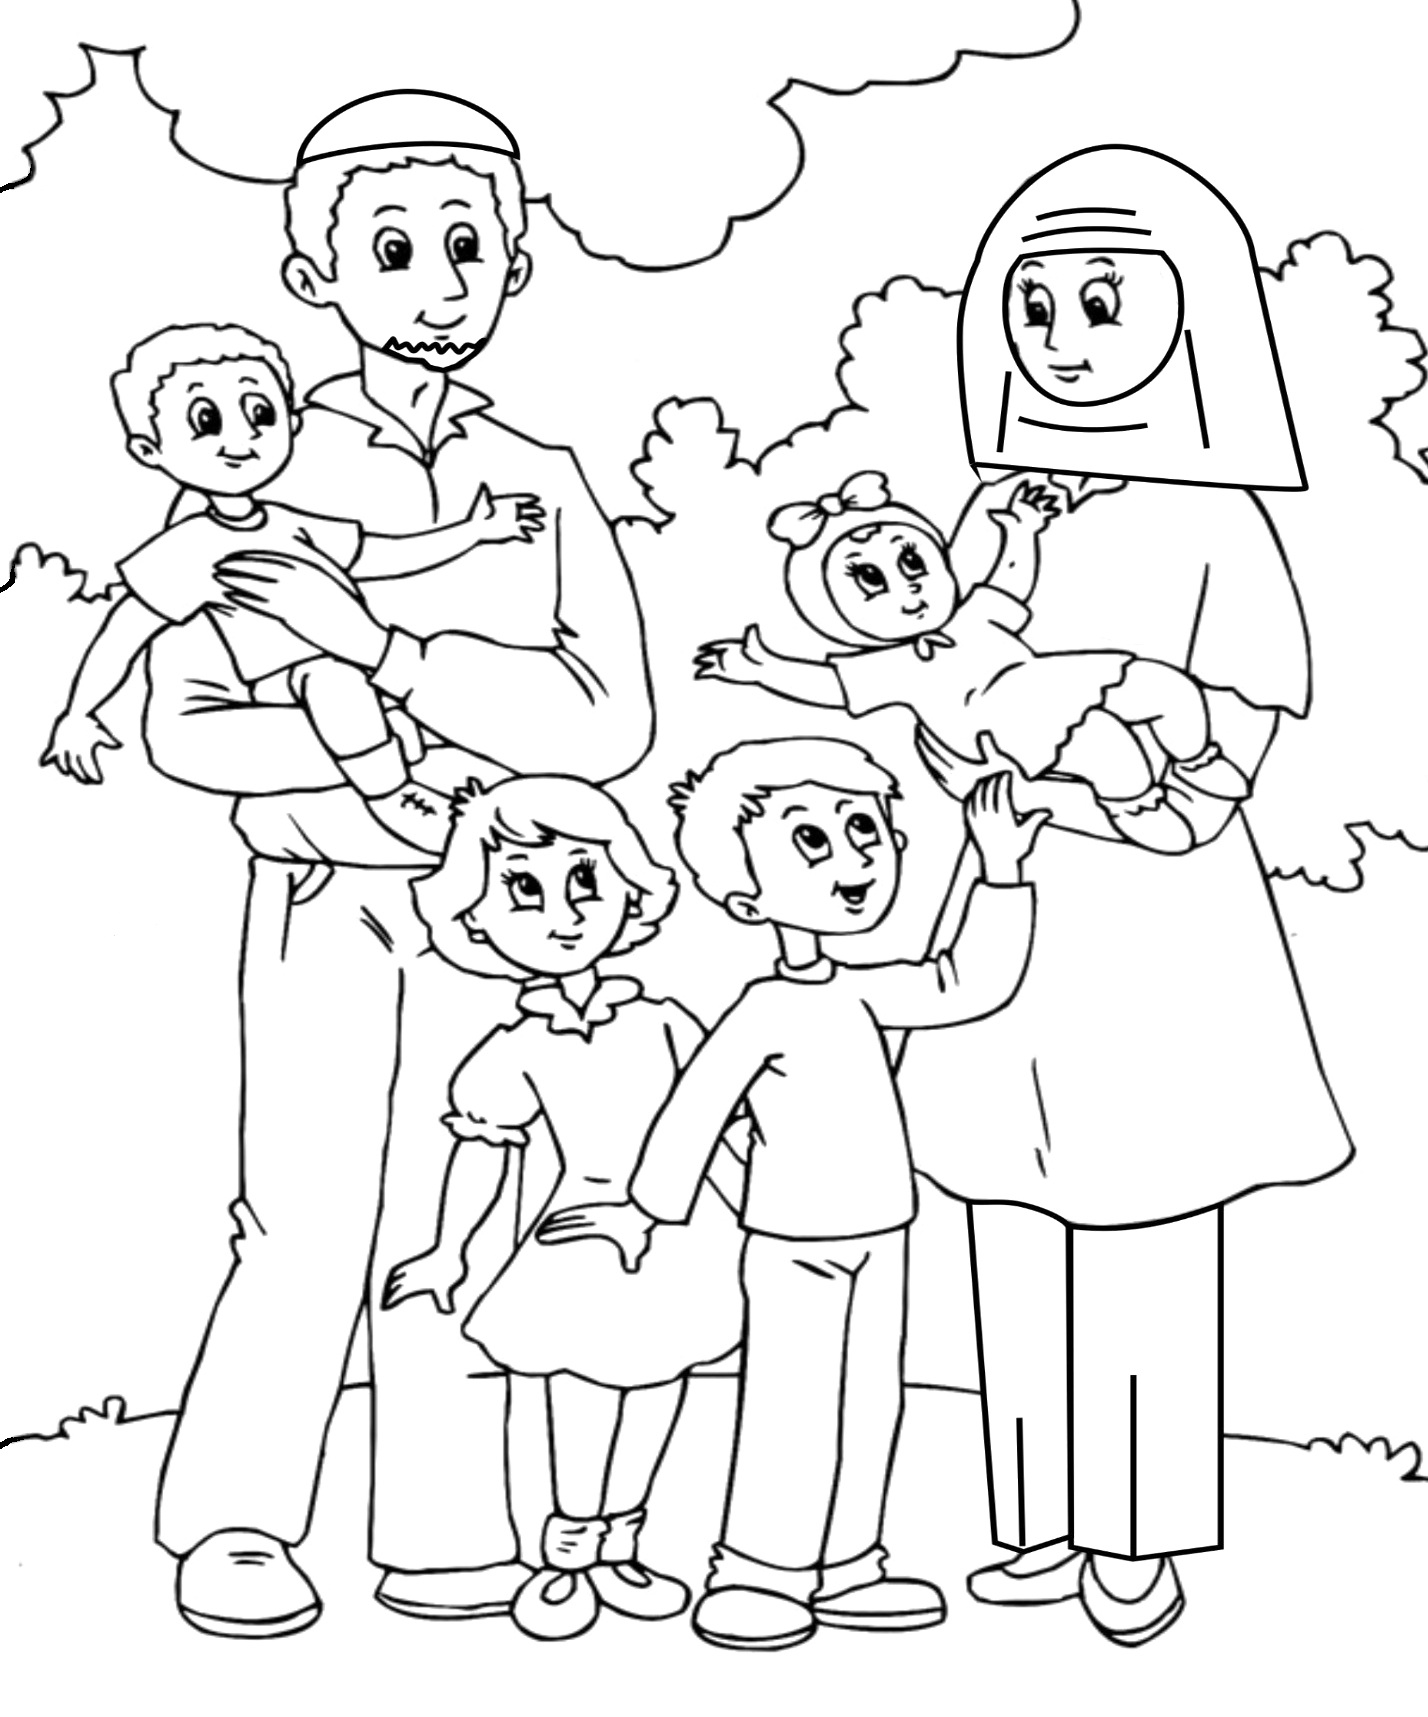 coloring family picture father39s day coloring book for kids pictures to color coloring picture family